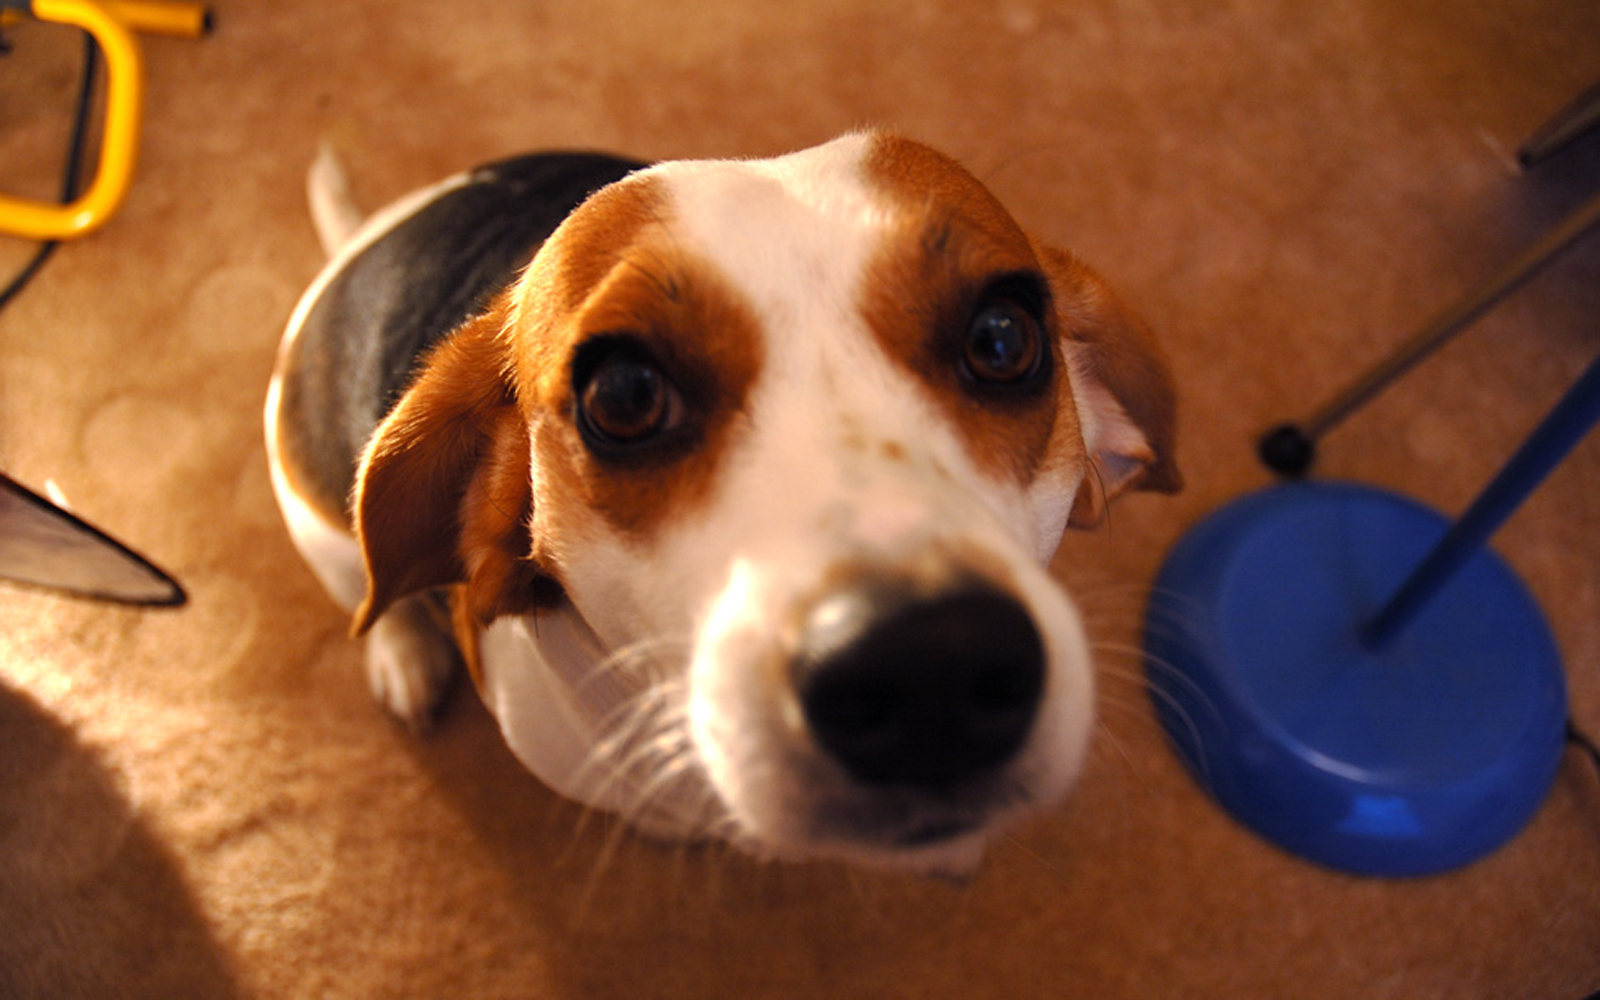 Behavior Hotlines You Can Contact to Get Help With Your Pets